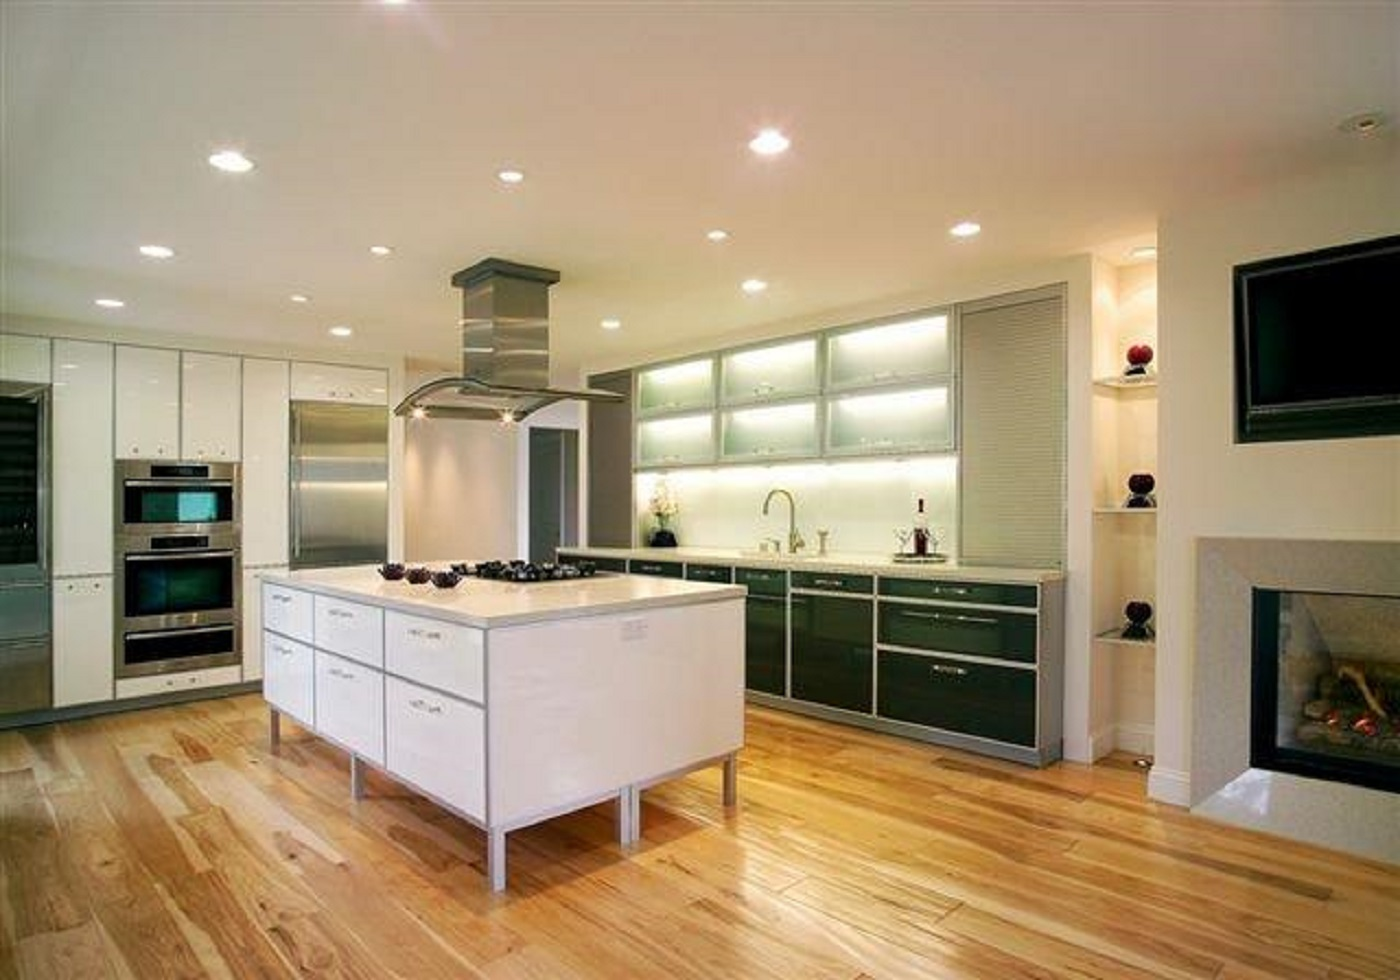 Tiburon european kitchen design for European kitchen design